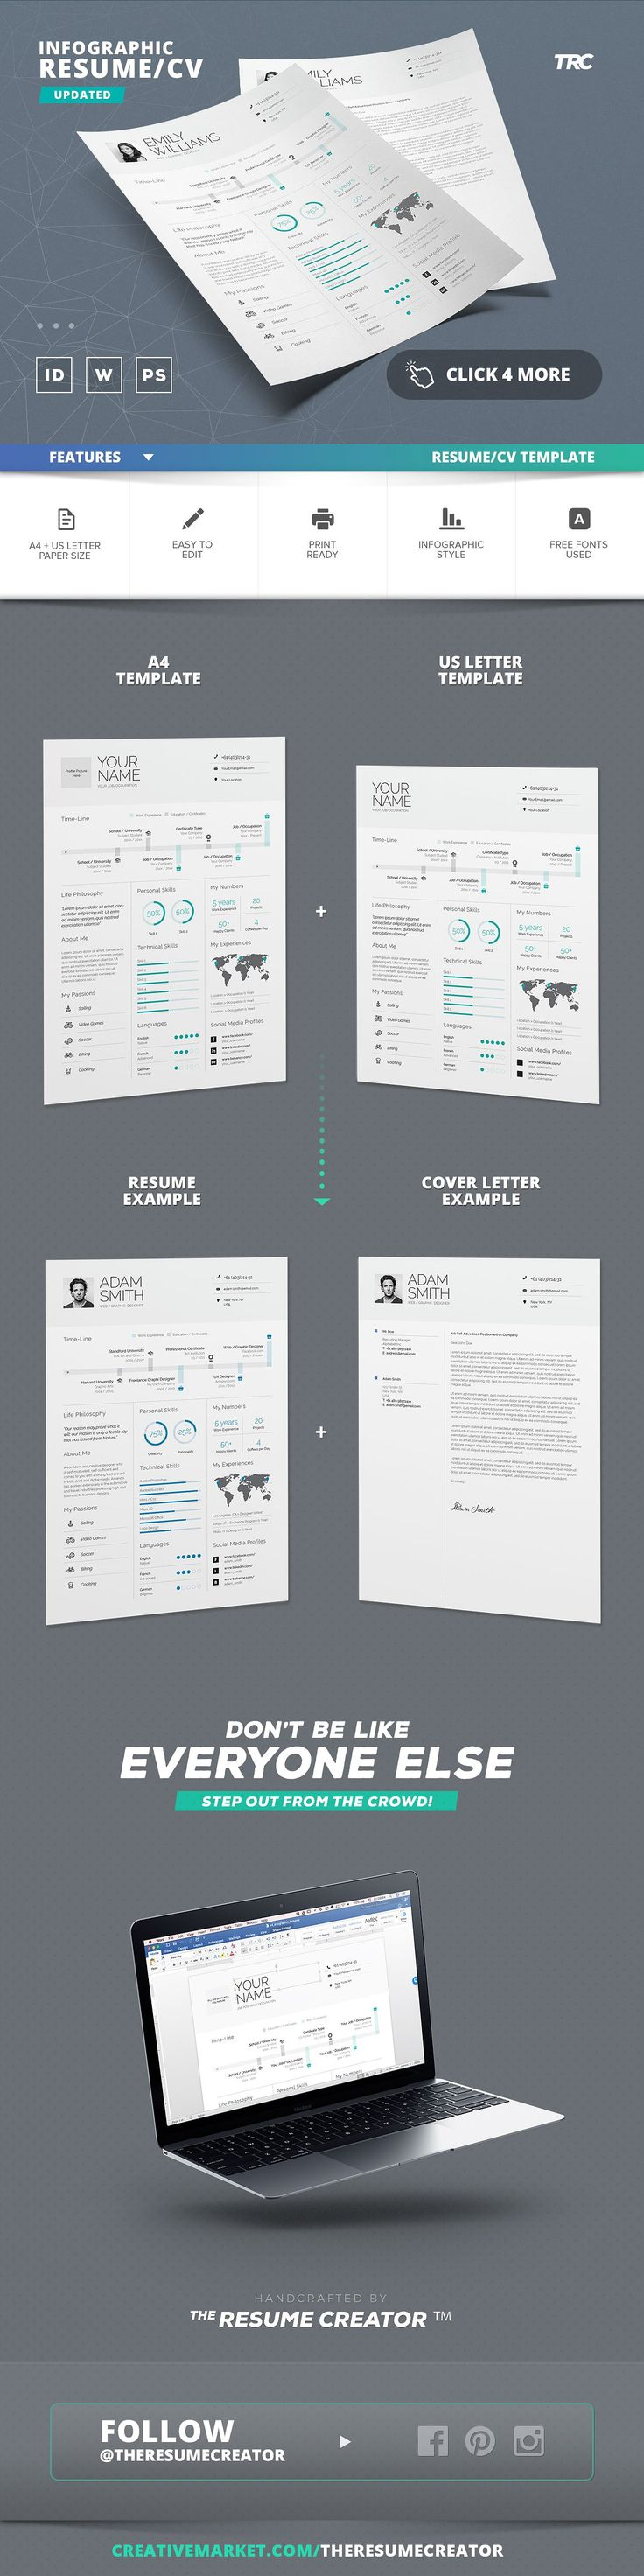 letter of resignation free template%0A Infographic Resume Cv Template Vol